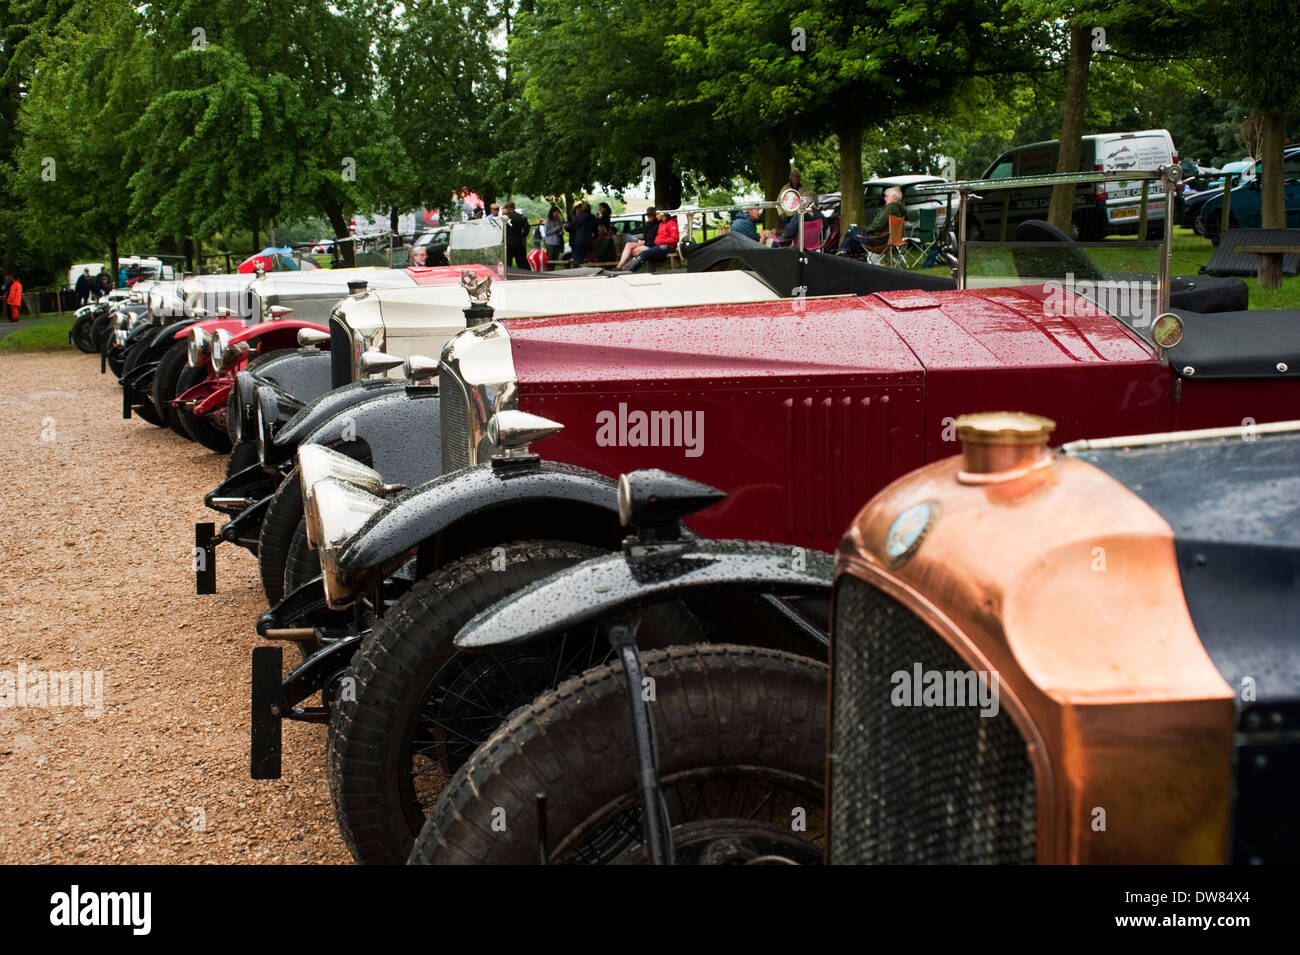 A row of vintage 1920s Vauxhalls at the VSCC Prescott Speed Hill Climb, Gloucestershire, England, UK. - Stock Image